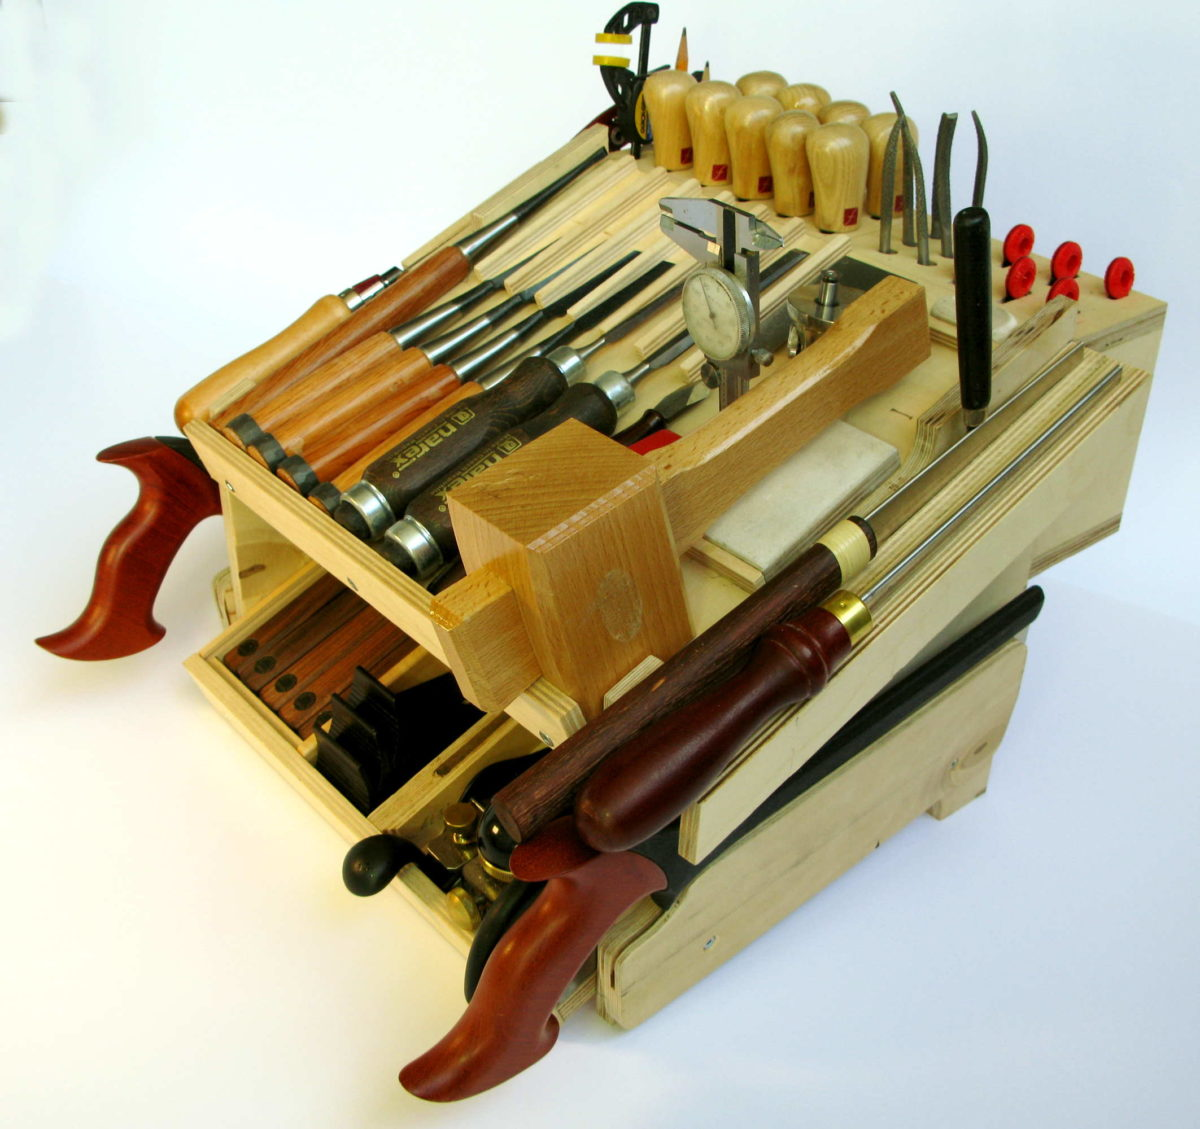 Fine Woodworking Hand Tools